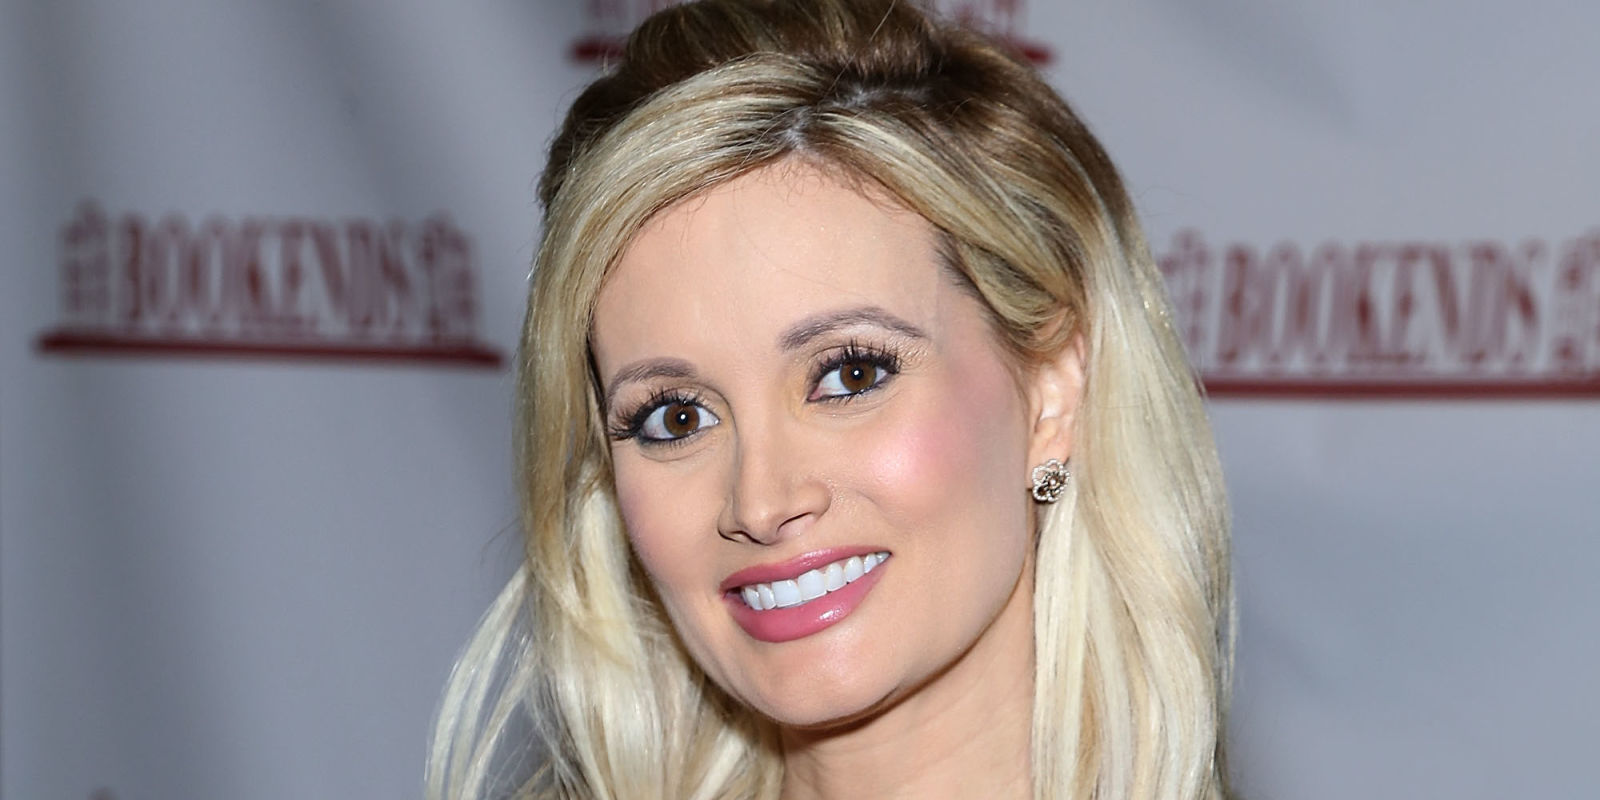 Holly Madison Interview - The Vegas Diaries: Romance, Rolling the Dice, and the Road to Reinvention,